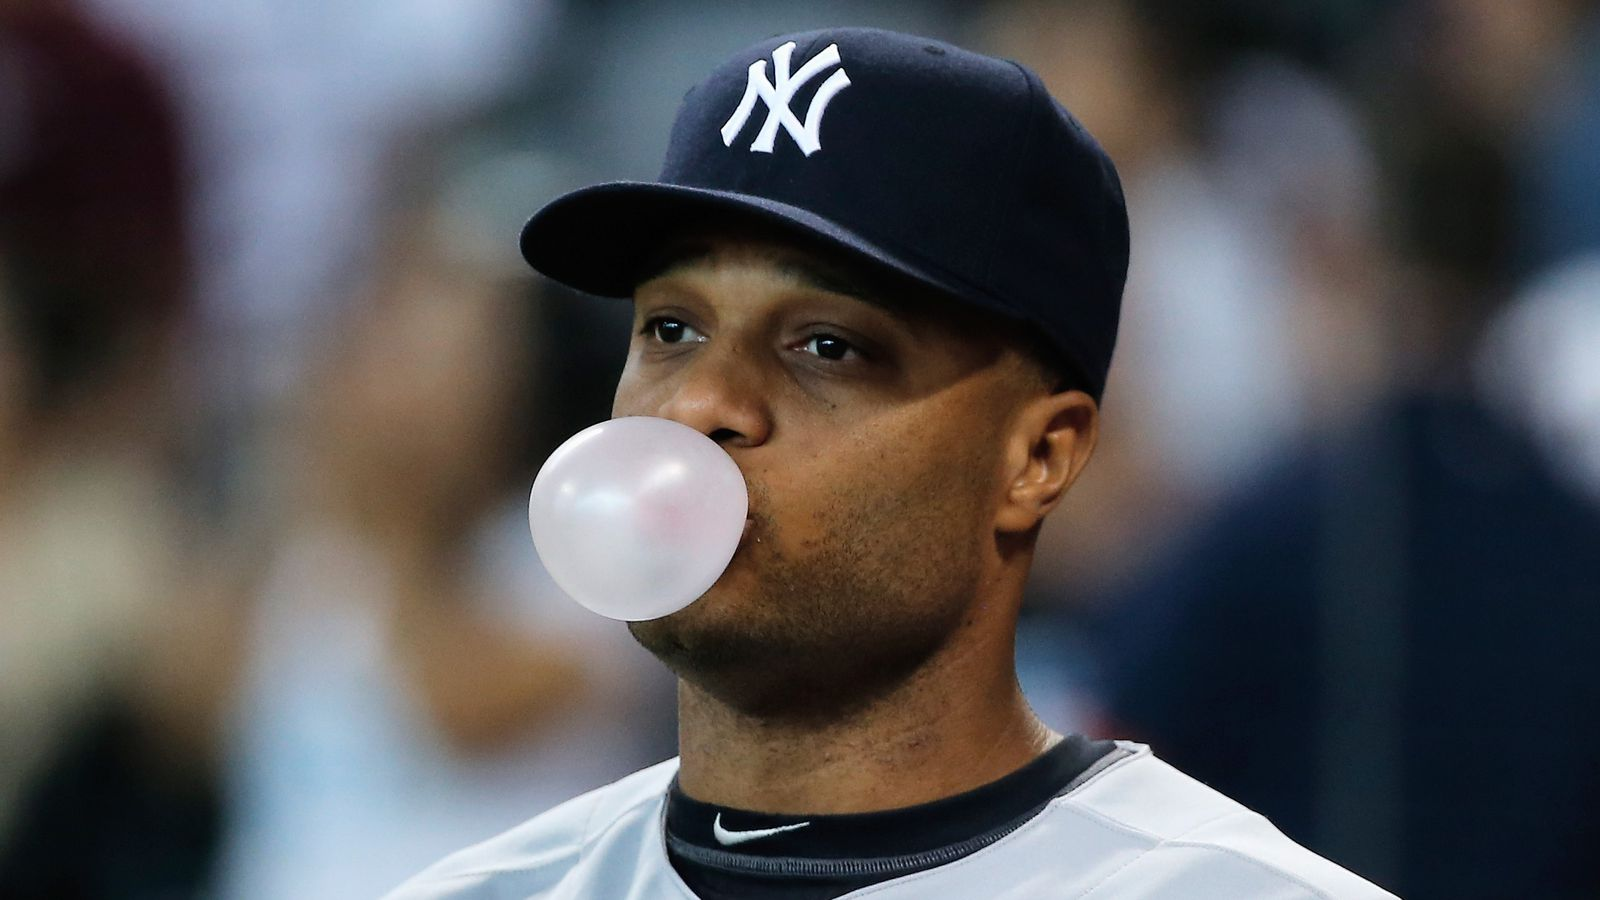 Robinson Cano wants to be a Yankee again